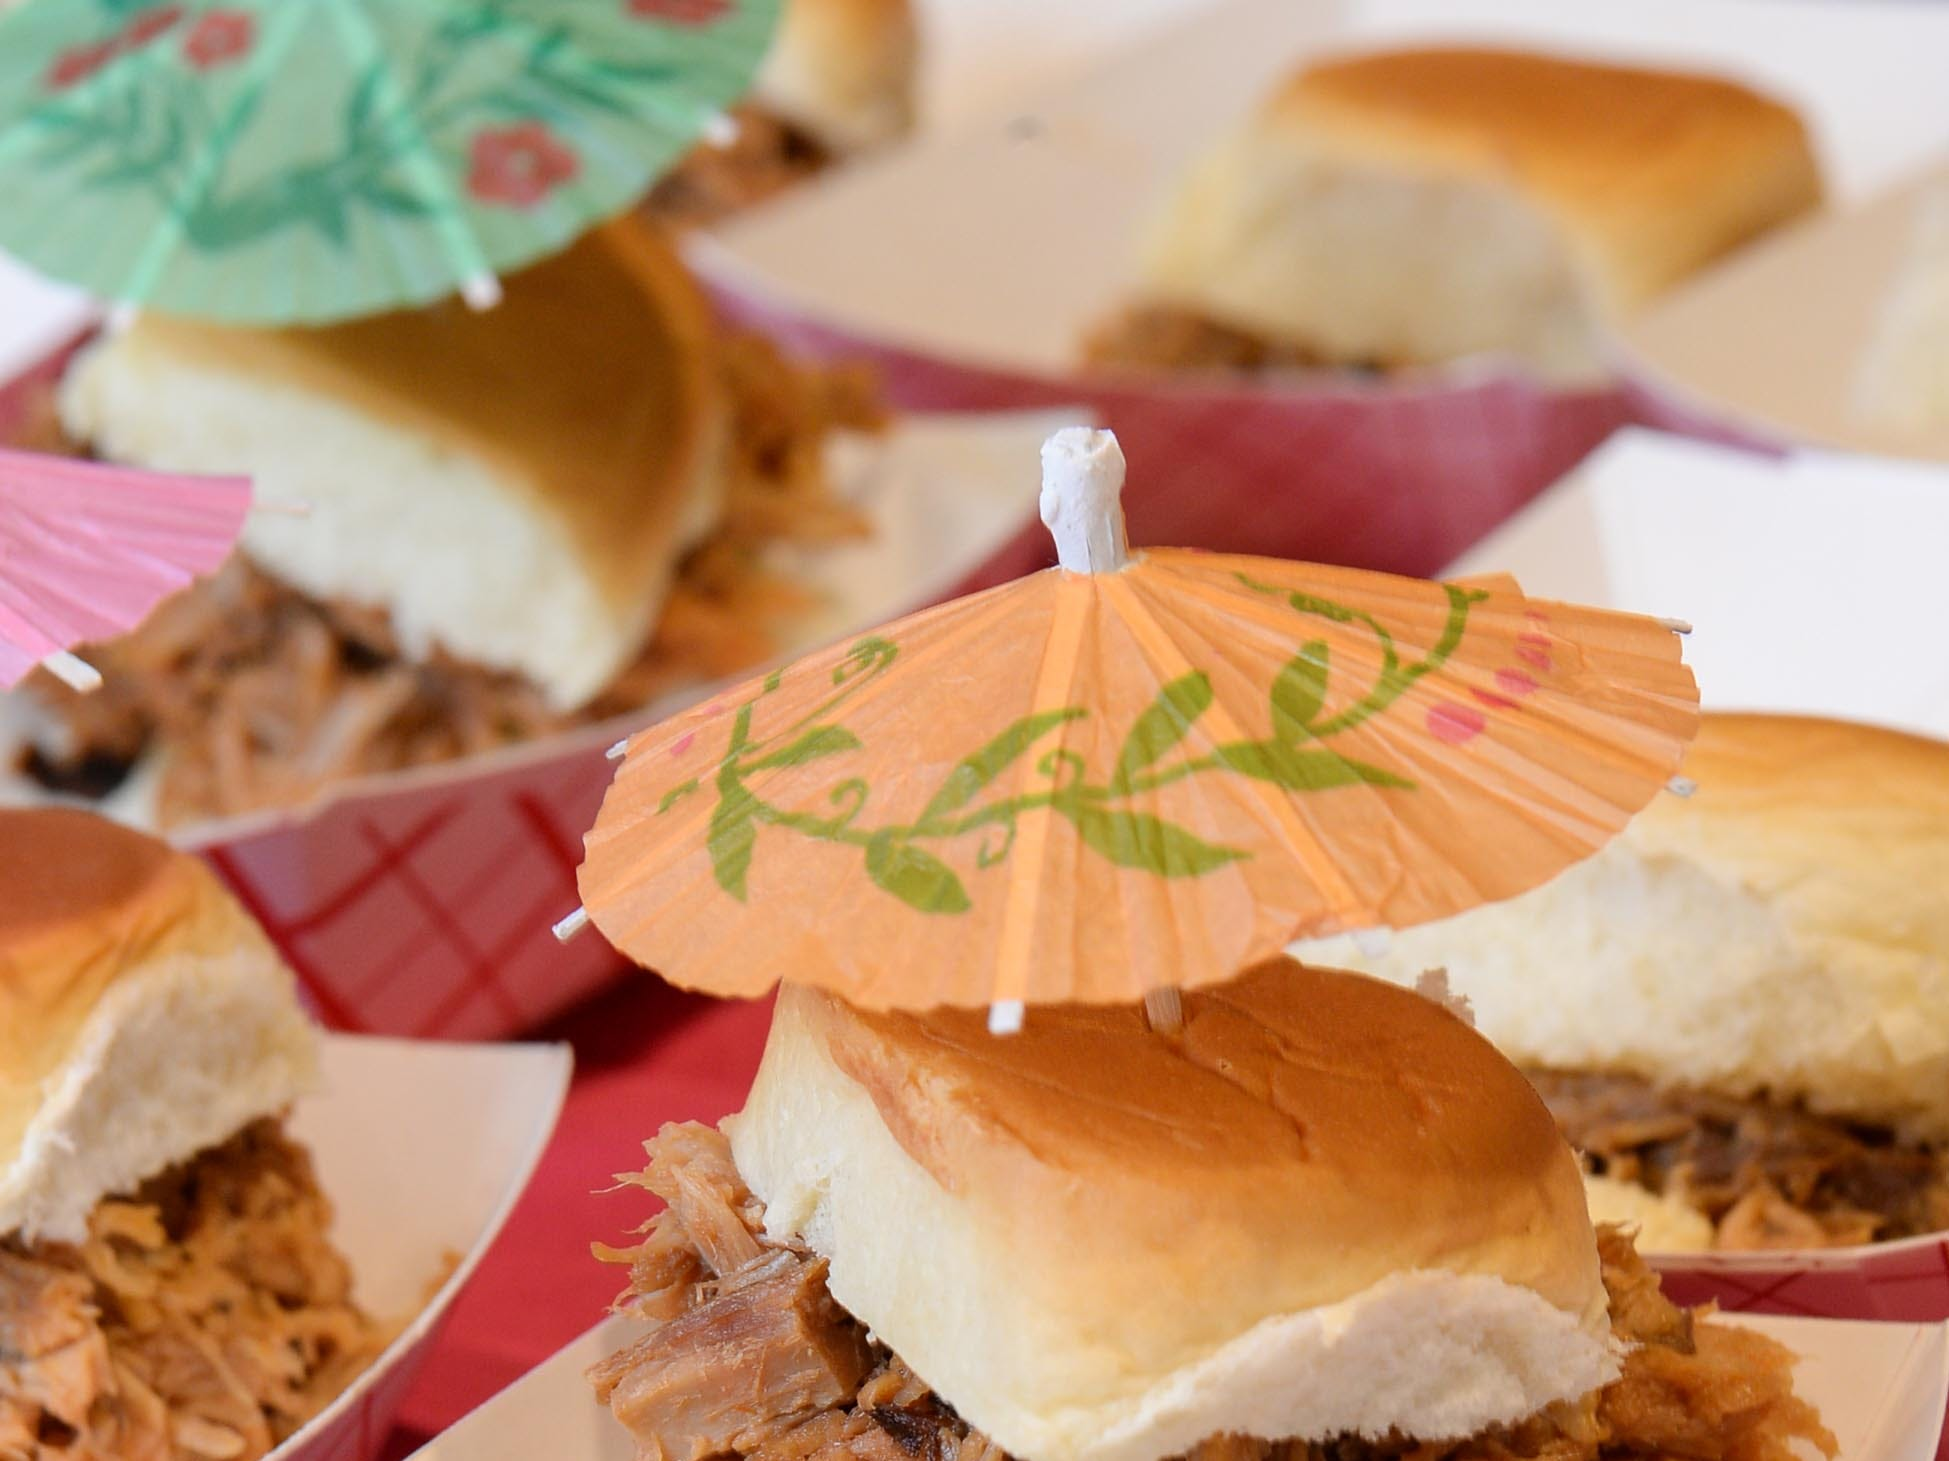 A barbecue slider with paper umbrella from Arnold's at the Anderson Area YMCA Ralph Hayes Toyota Taste of Anderson at The Bleckley Station Tuesday. Proceeds from the Aloha theme party benefit programs and services of the Anderson Area YMCA.